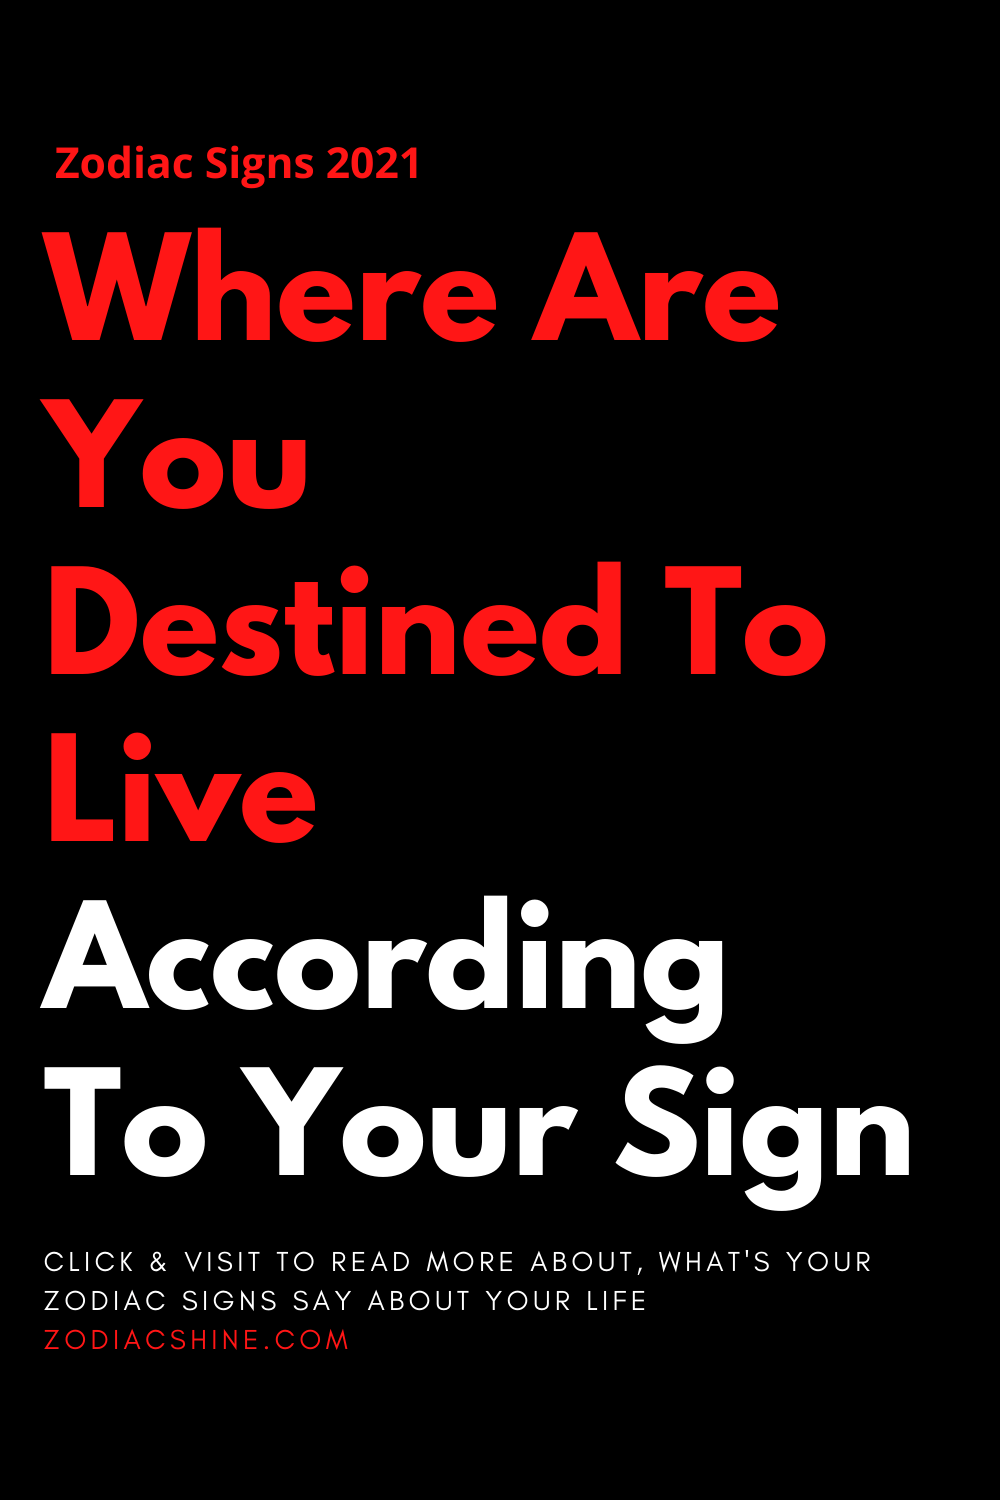 Where Are You Destined To Live According To Your Sign